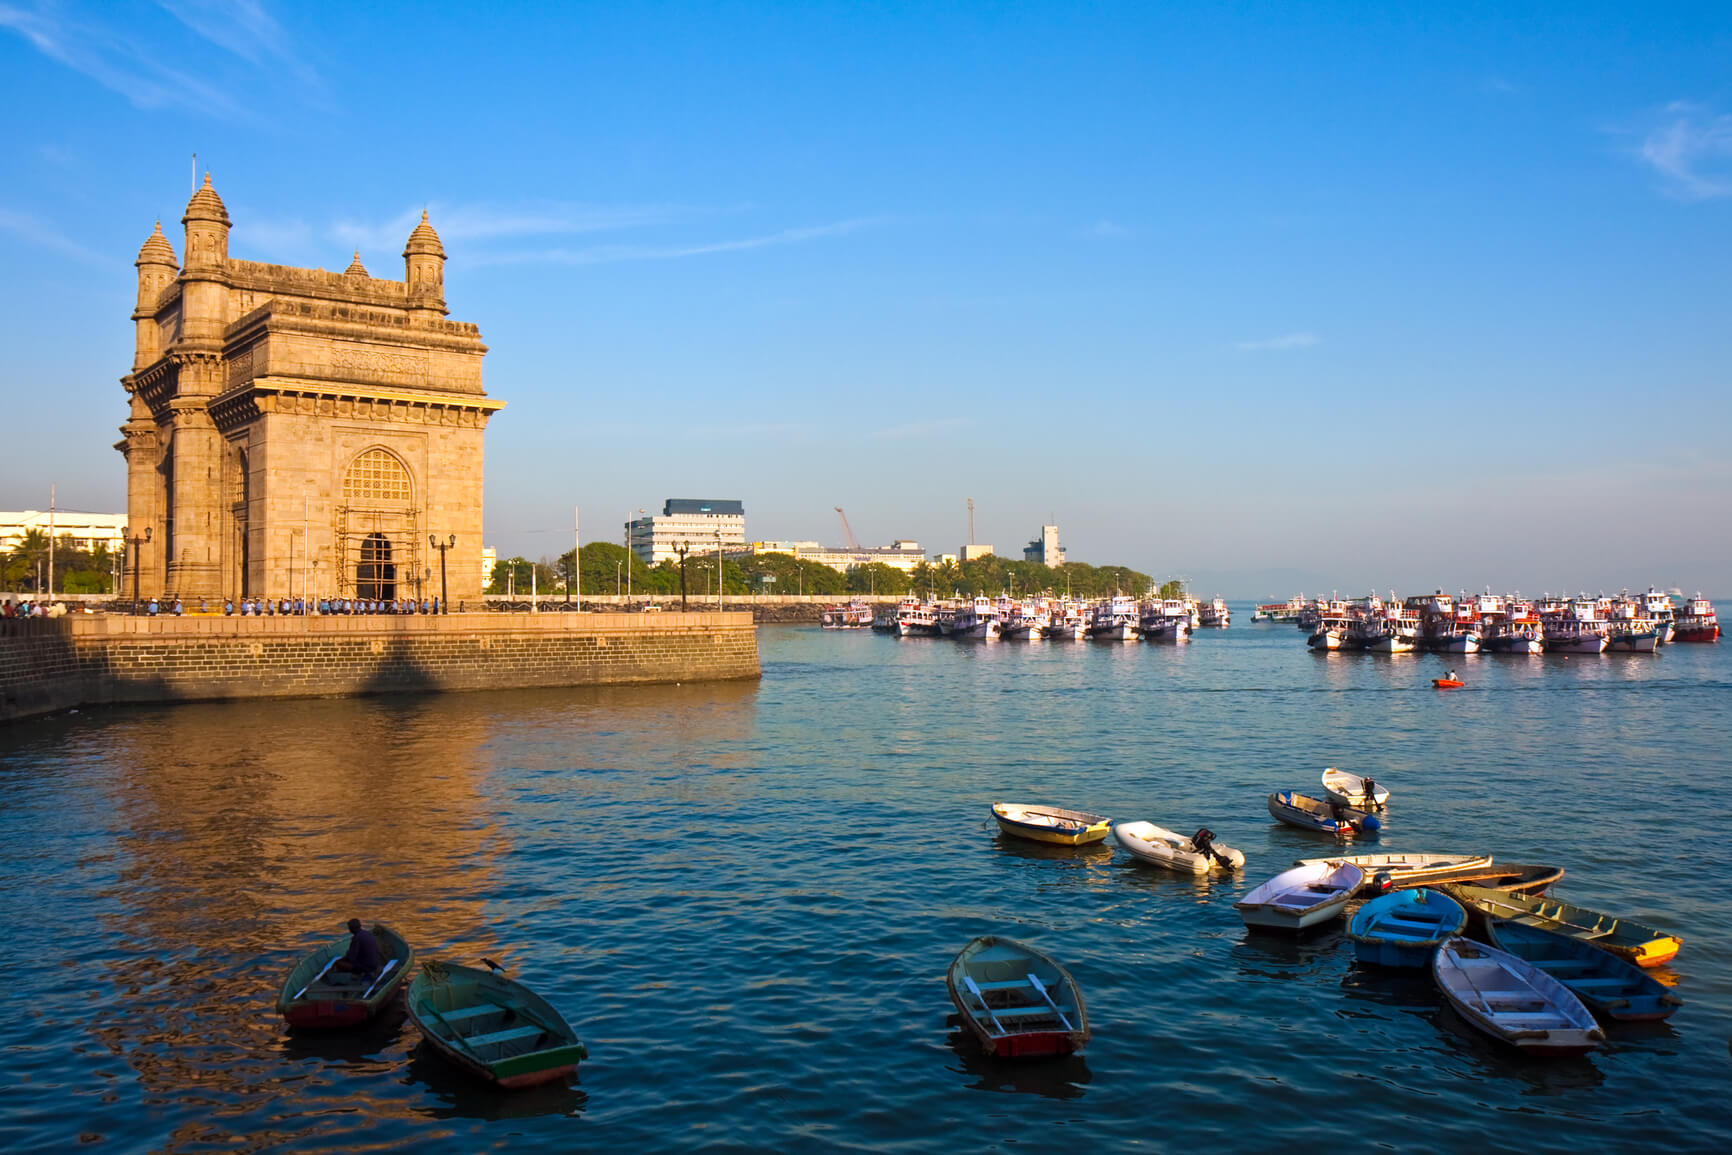 Chicago to Mumbai, India for only $589 roundtrip